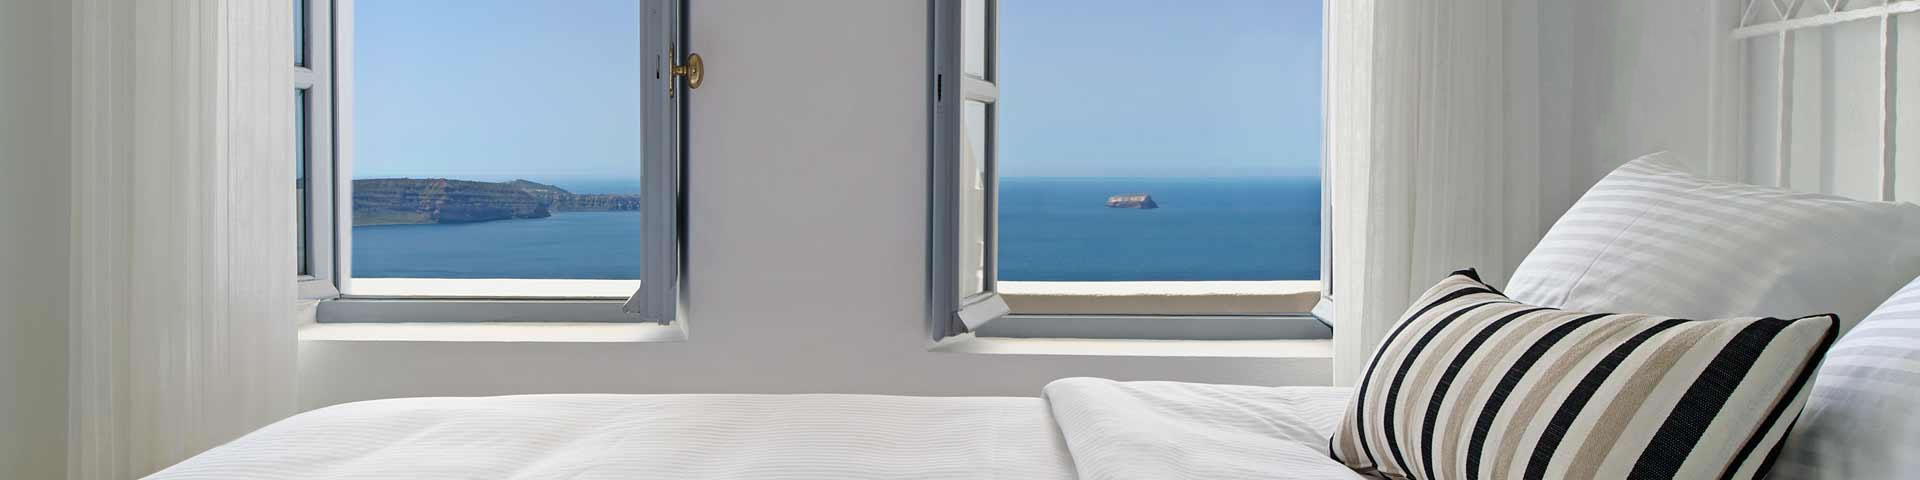 Santorini hotels, accommodation in Santorini